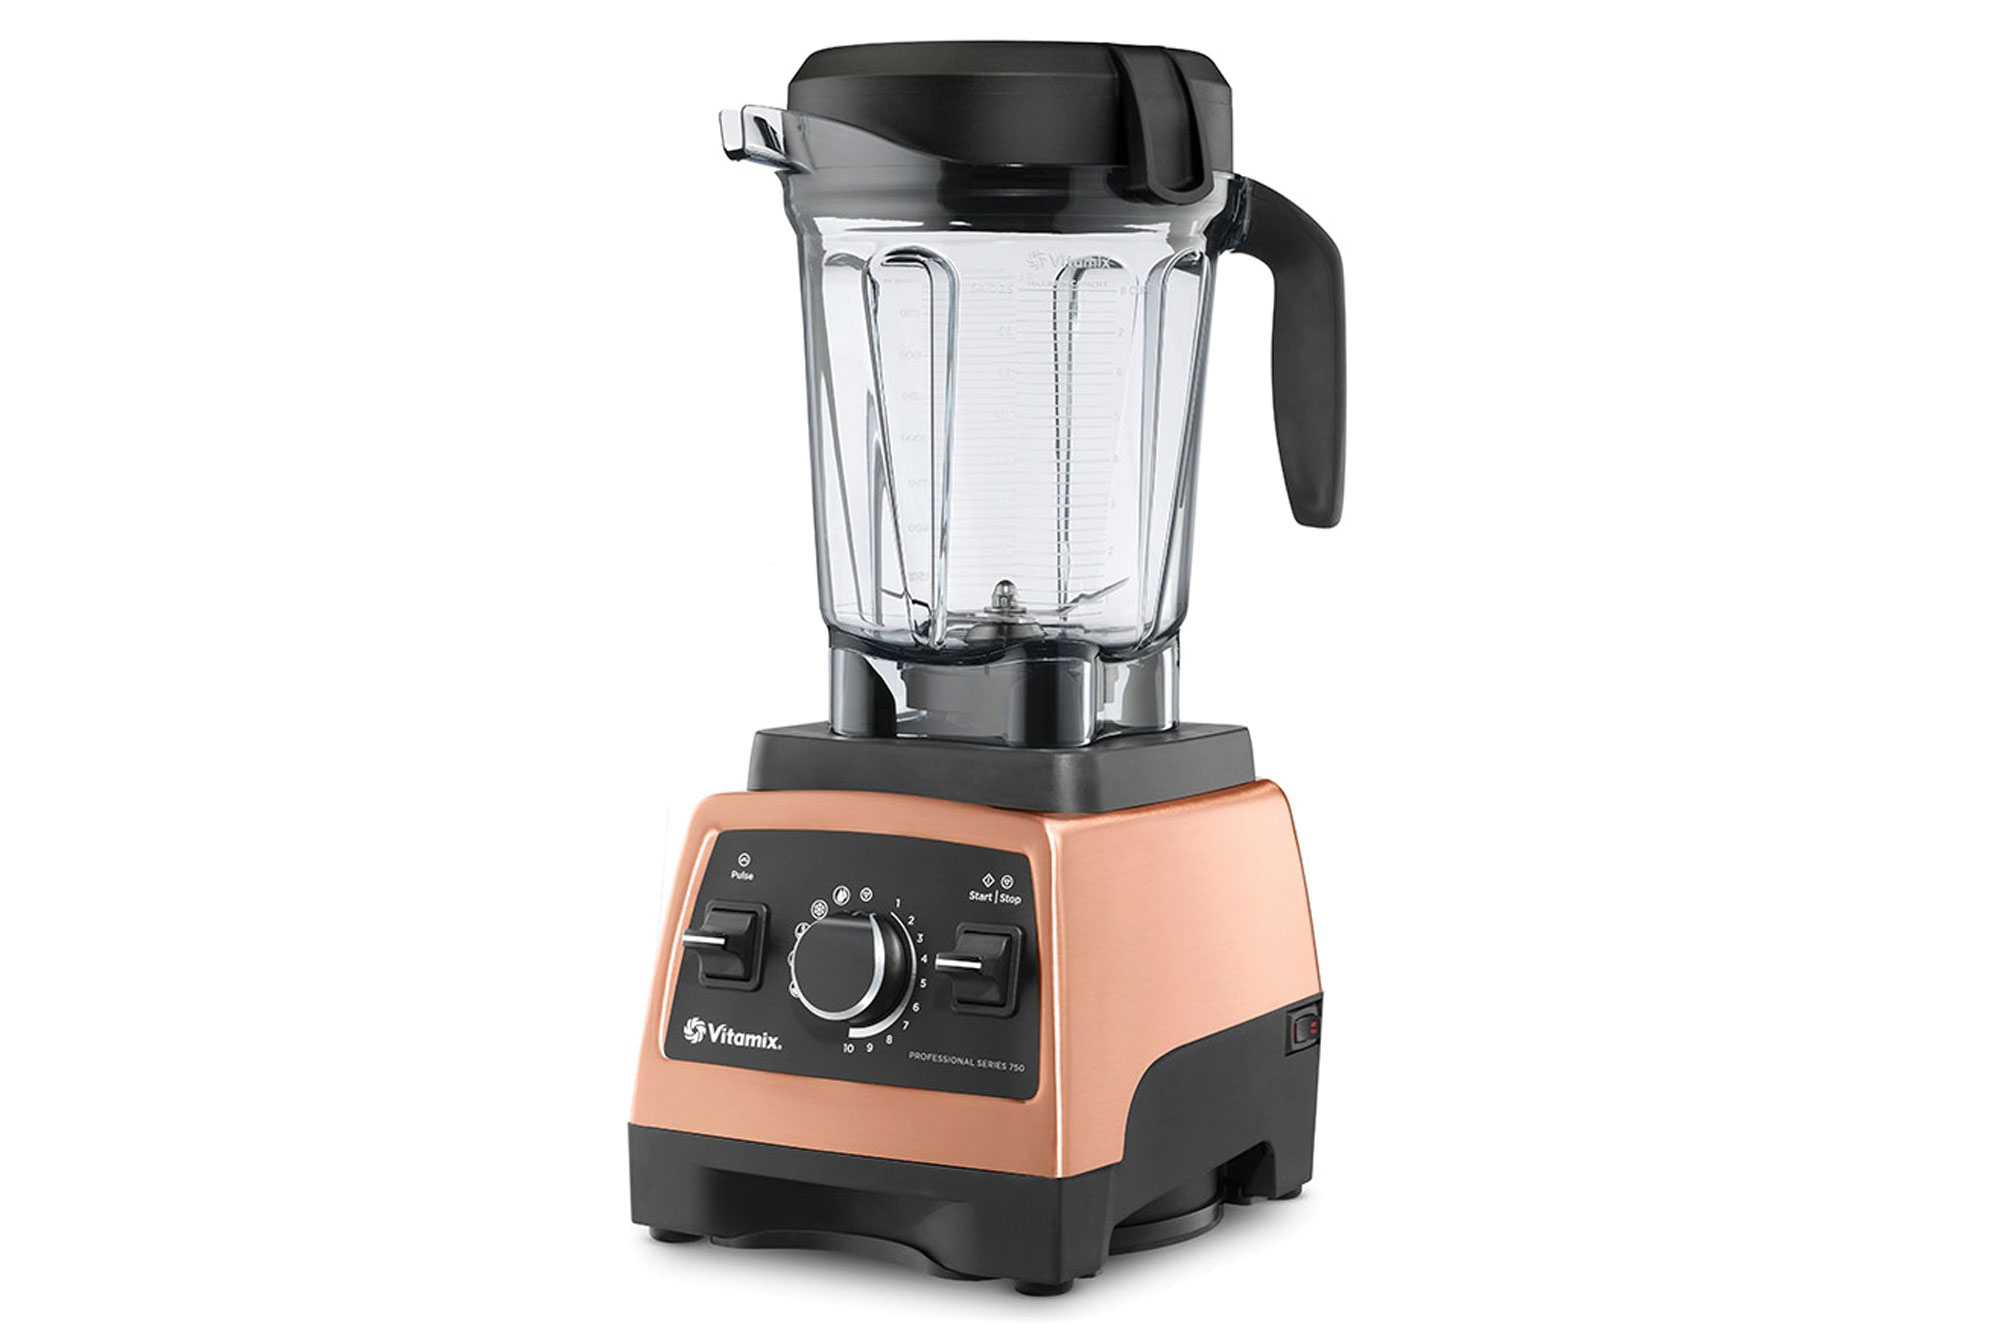 Vitamix Professional Series 750 Heritage Copper Blender